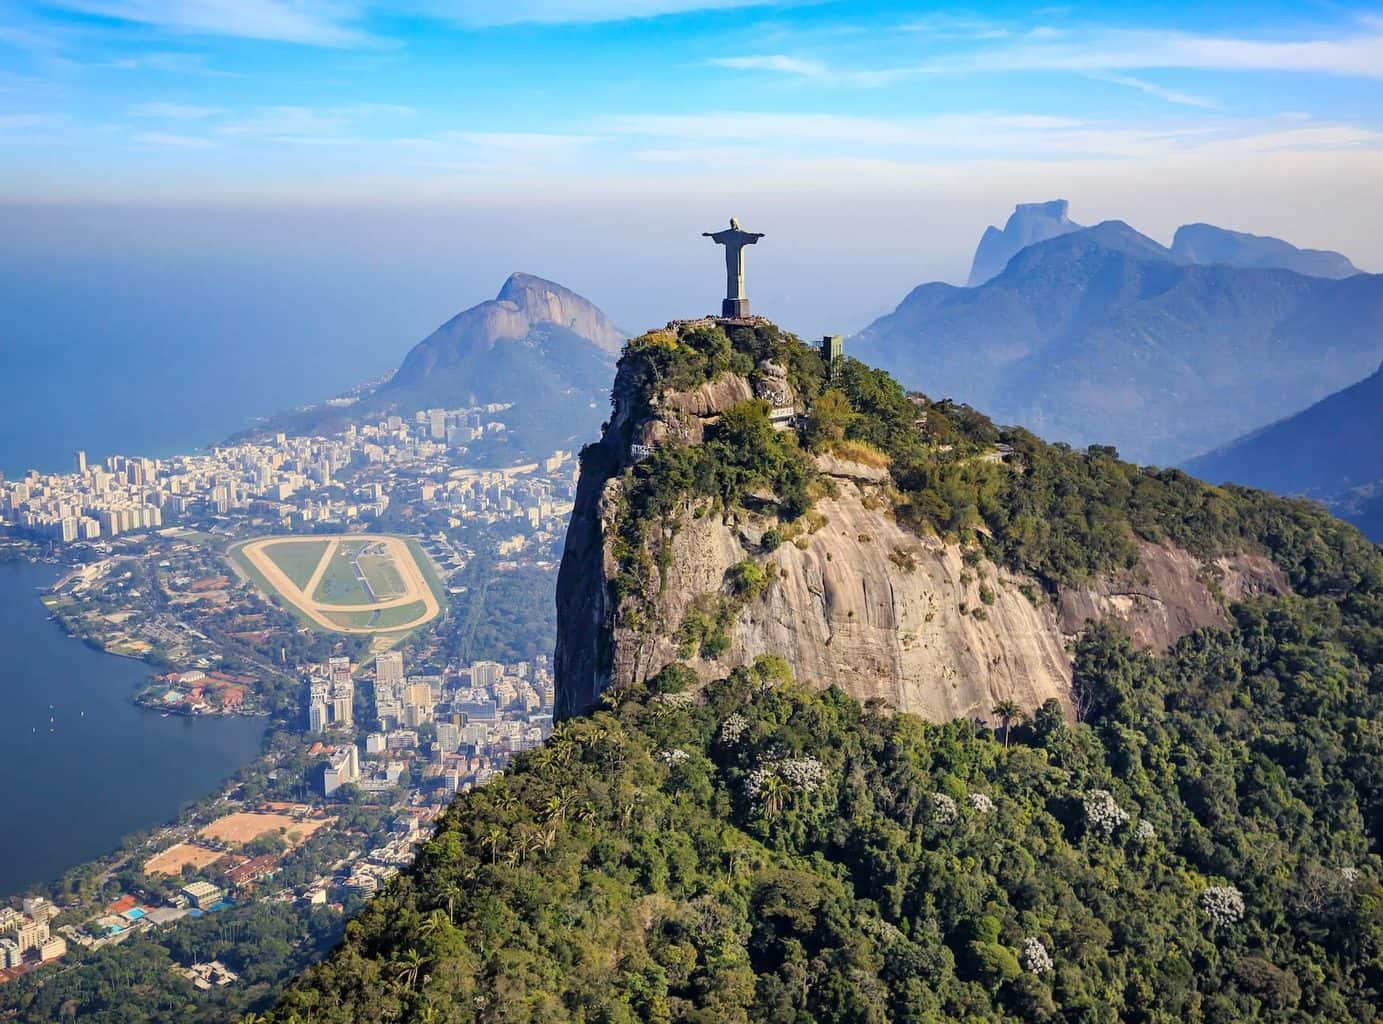 Luxury Holidays to Rio De Janeiro - landscape shot with Christ the Redeemer Statue in view